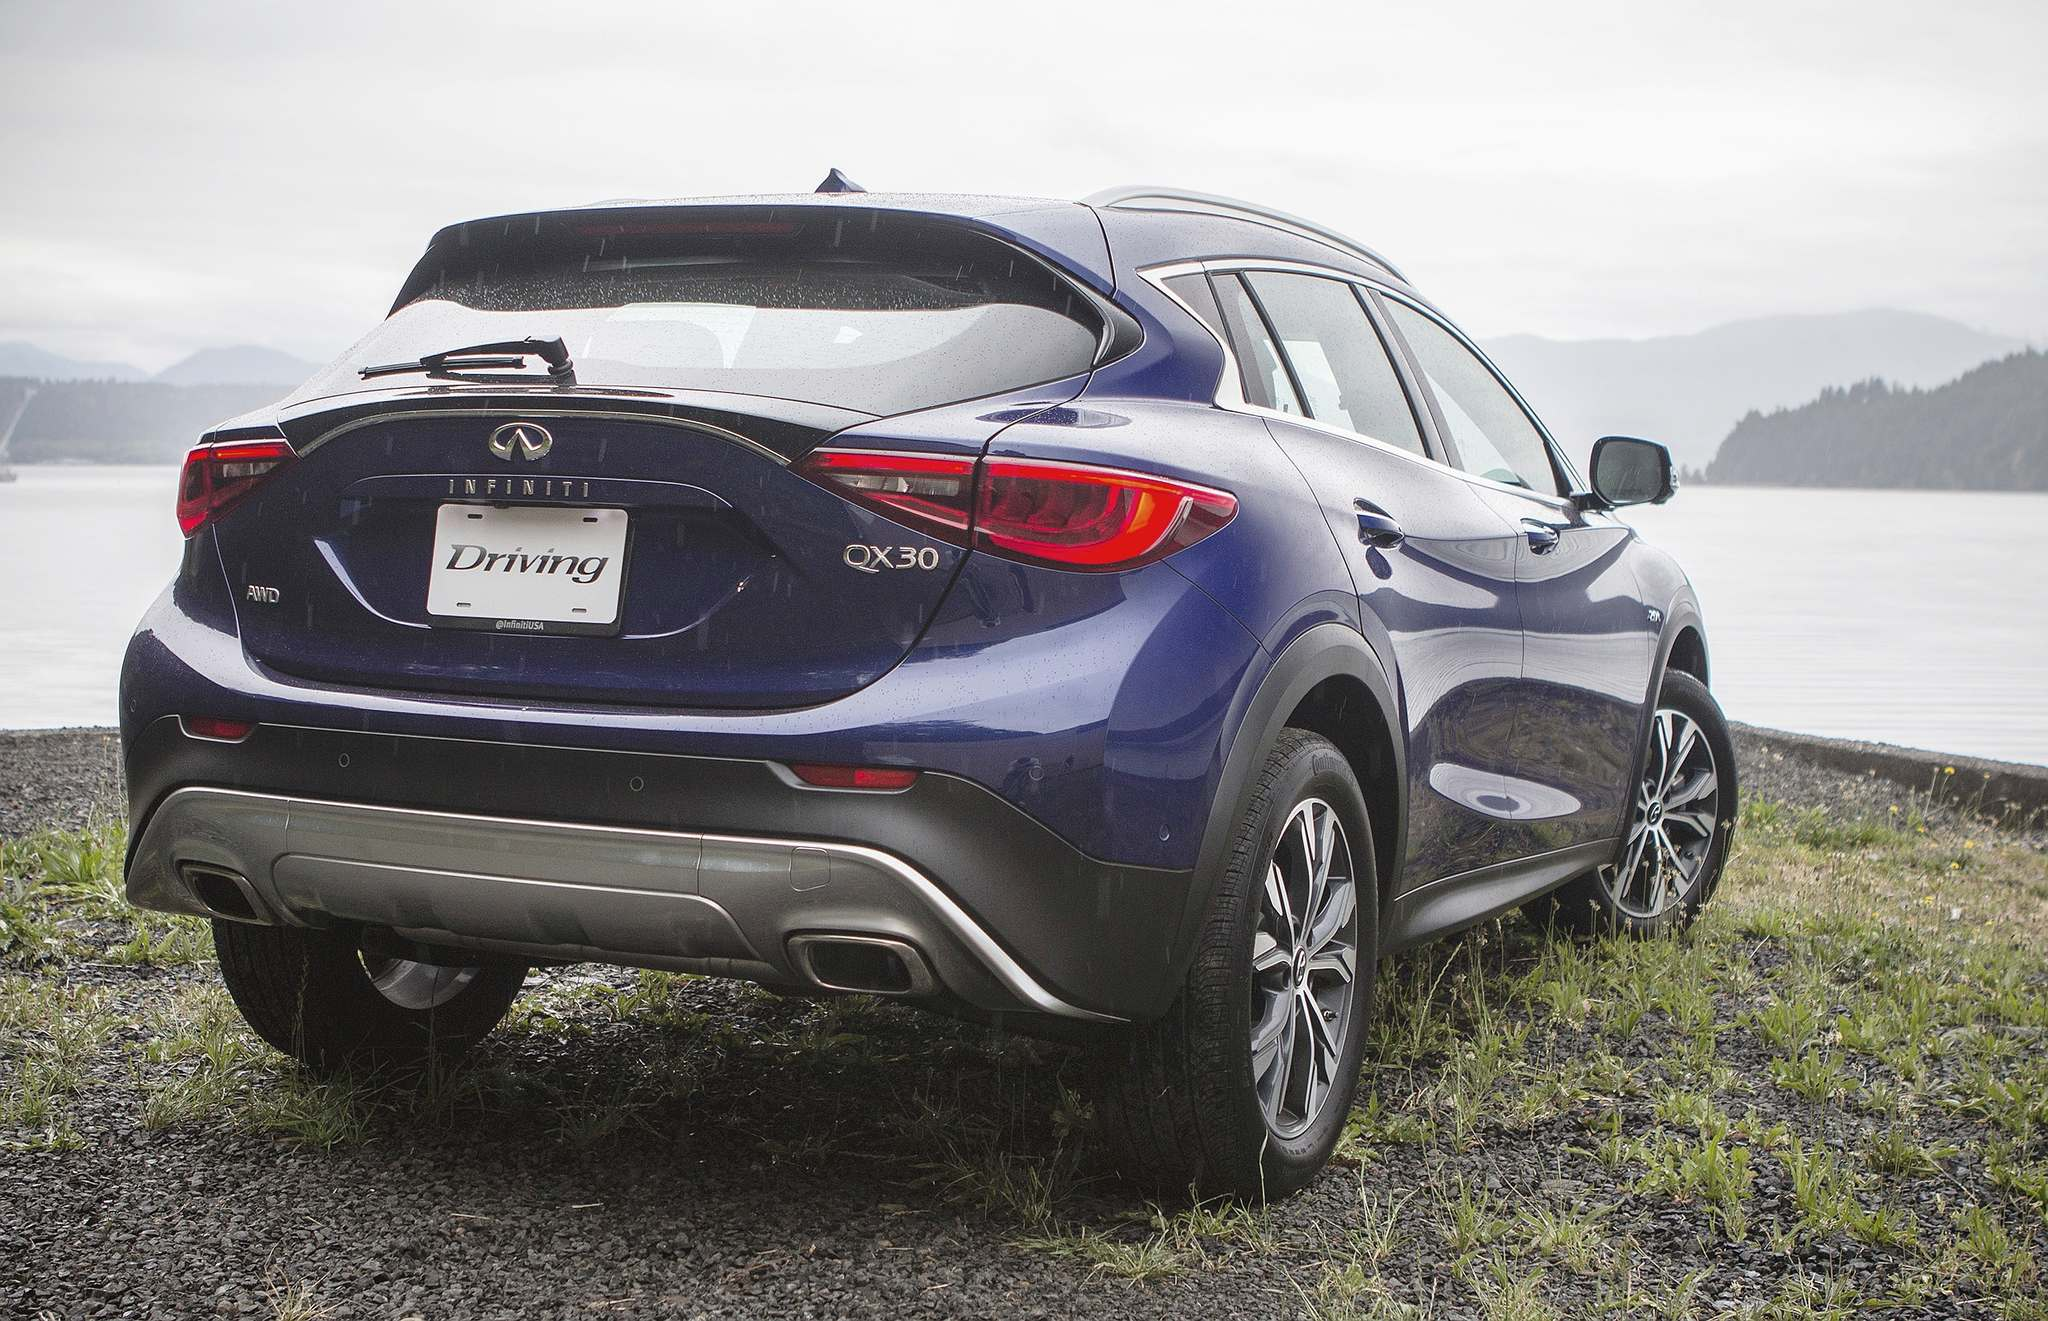 Clayton Seams / postmedia network inc.The 2017 QX30 represents the first new model for Infiniti since 2013.